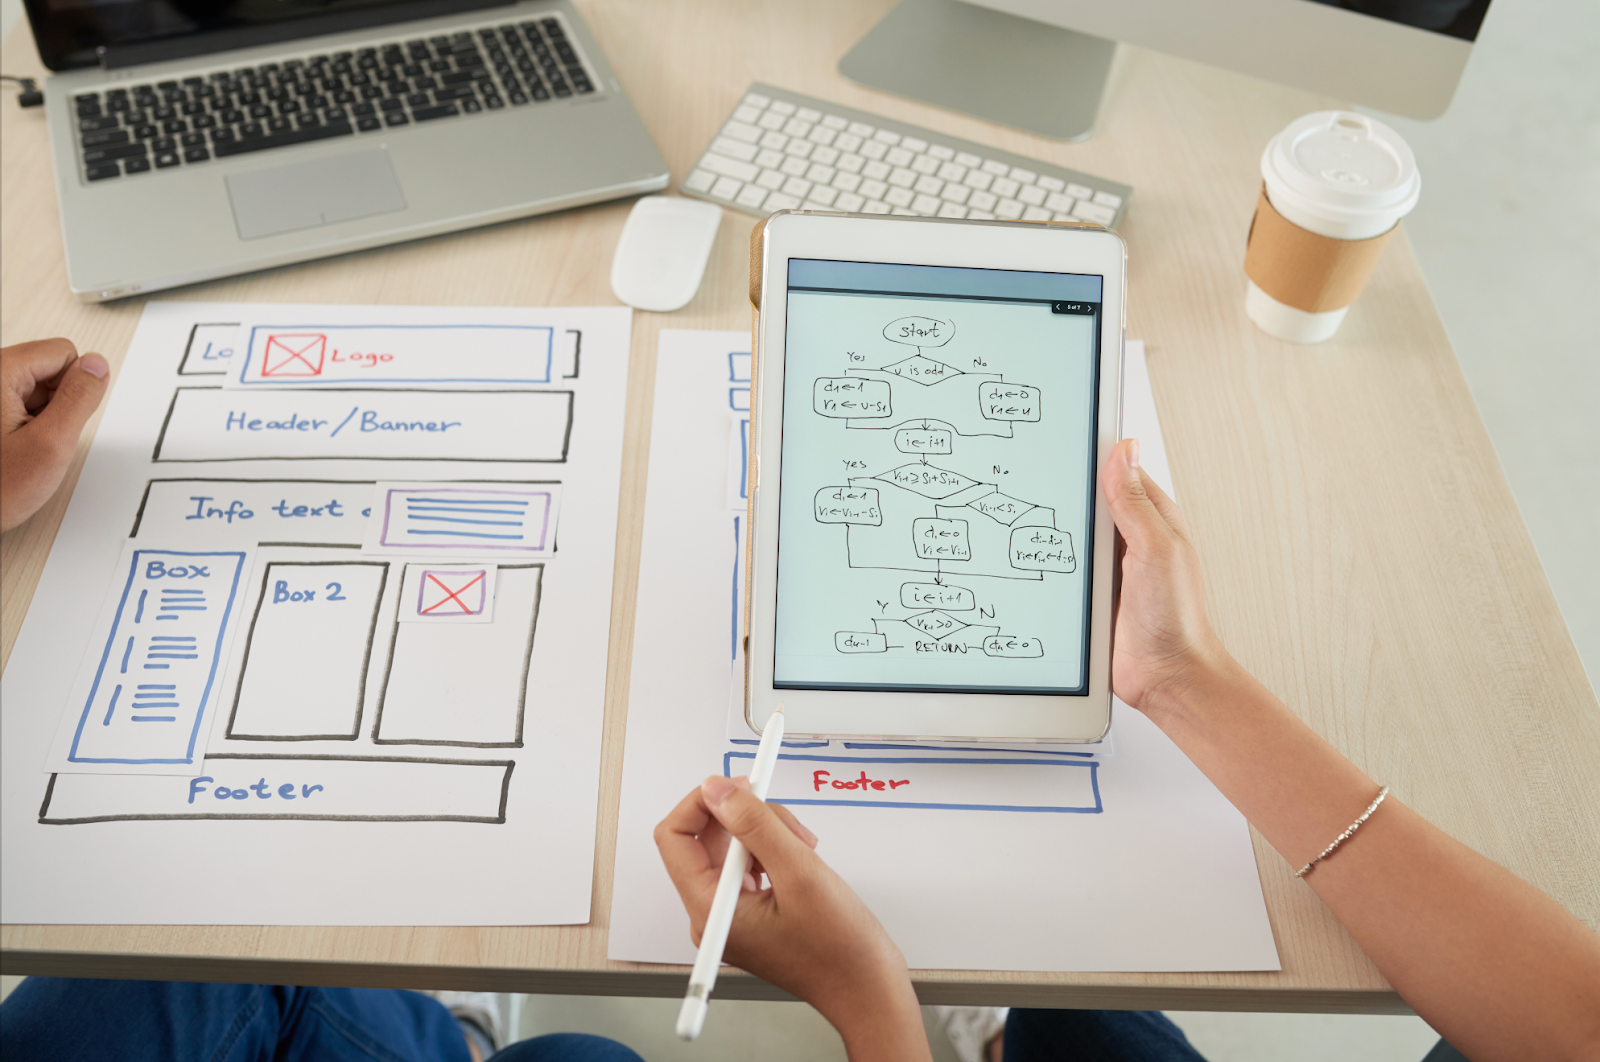 UX wireframes displayed on tablet and on paper